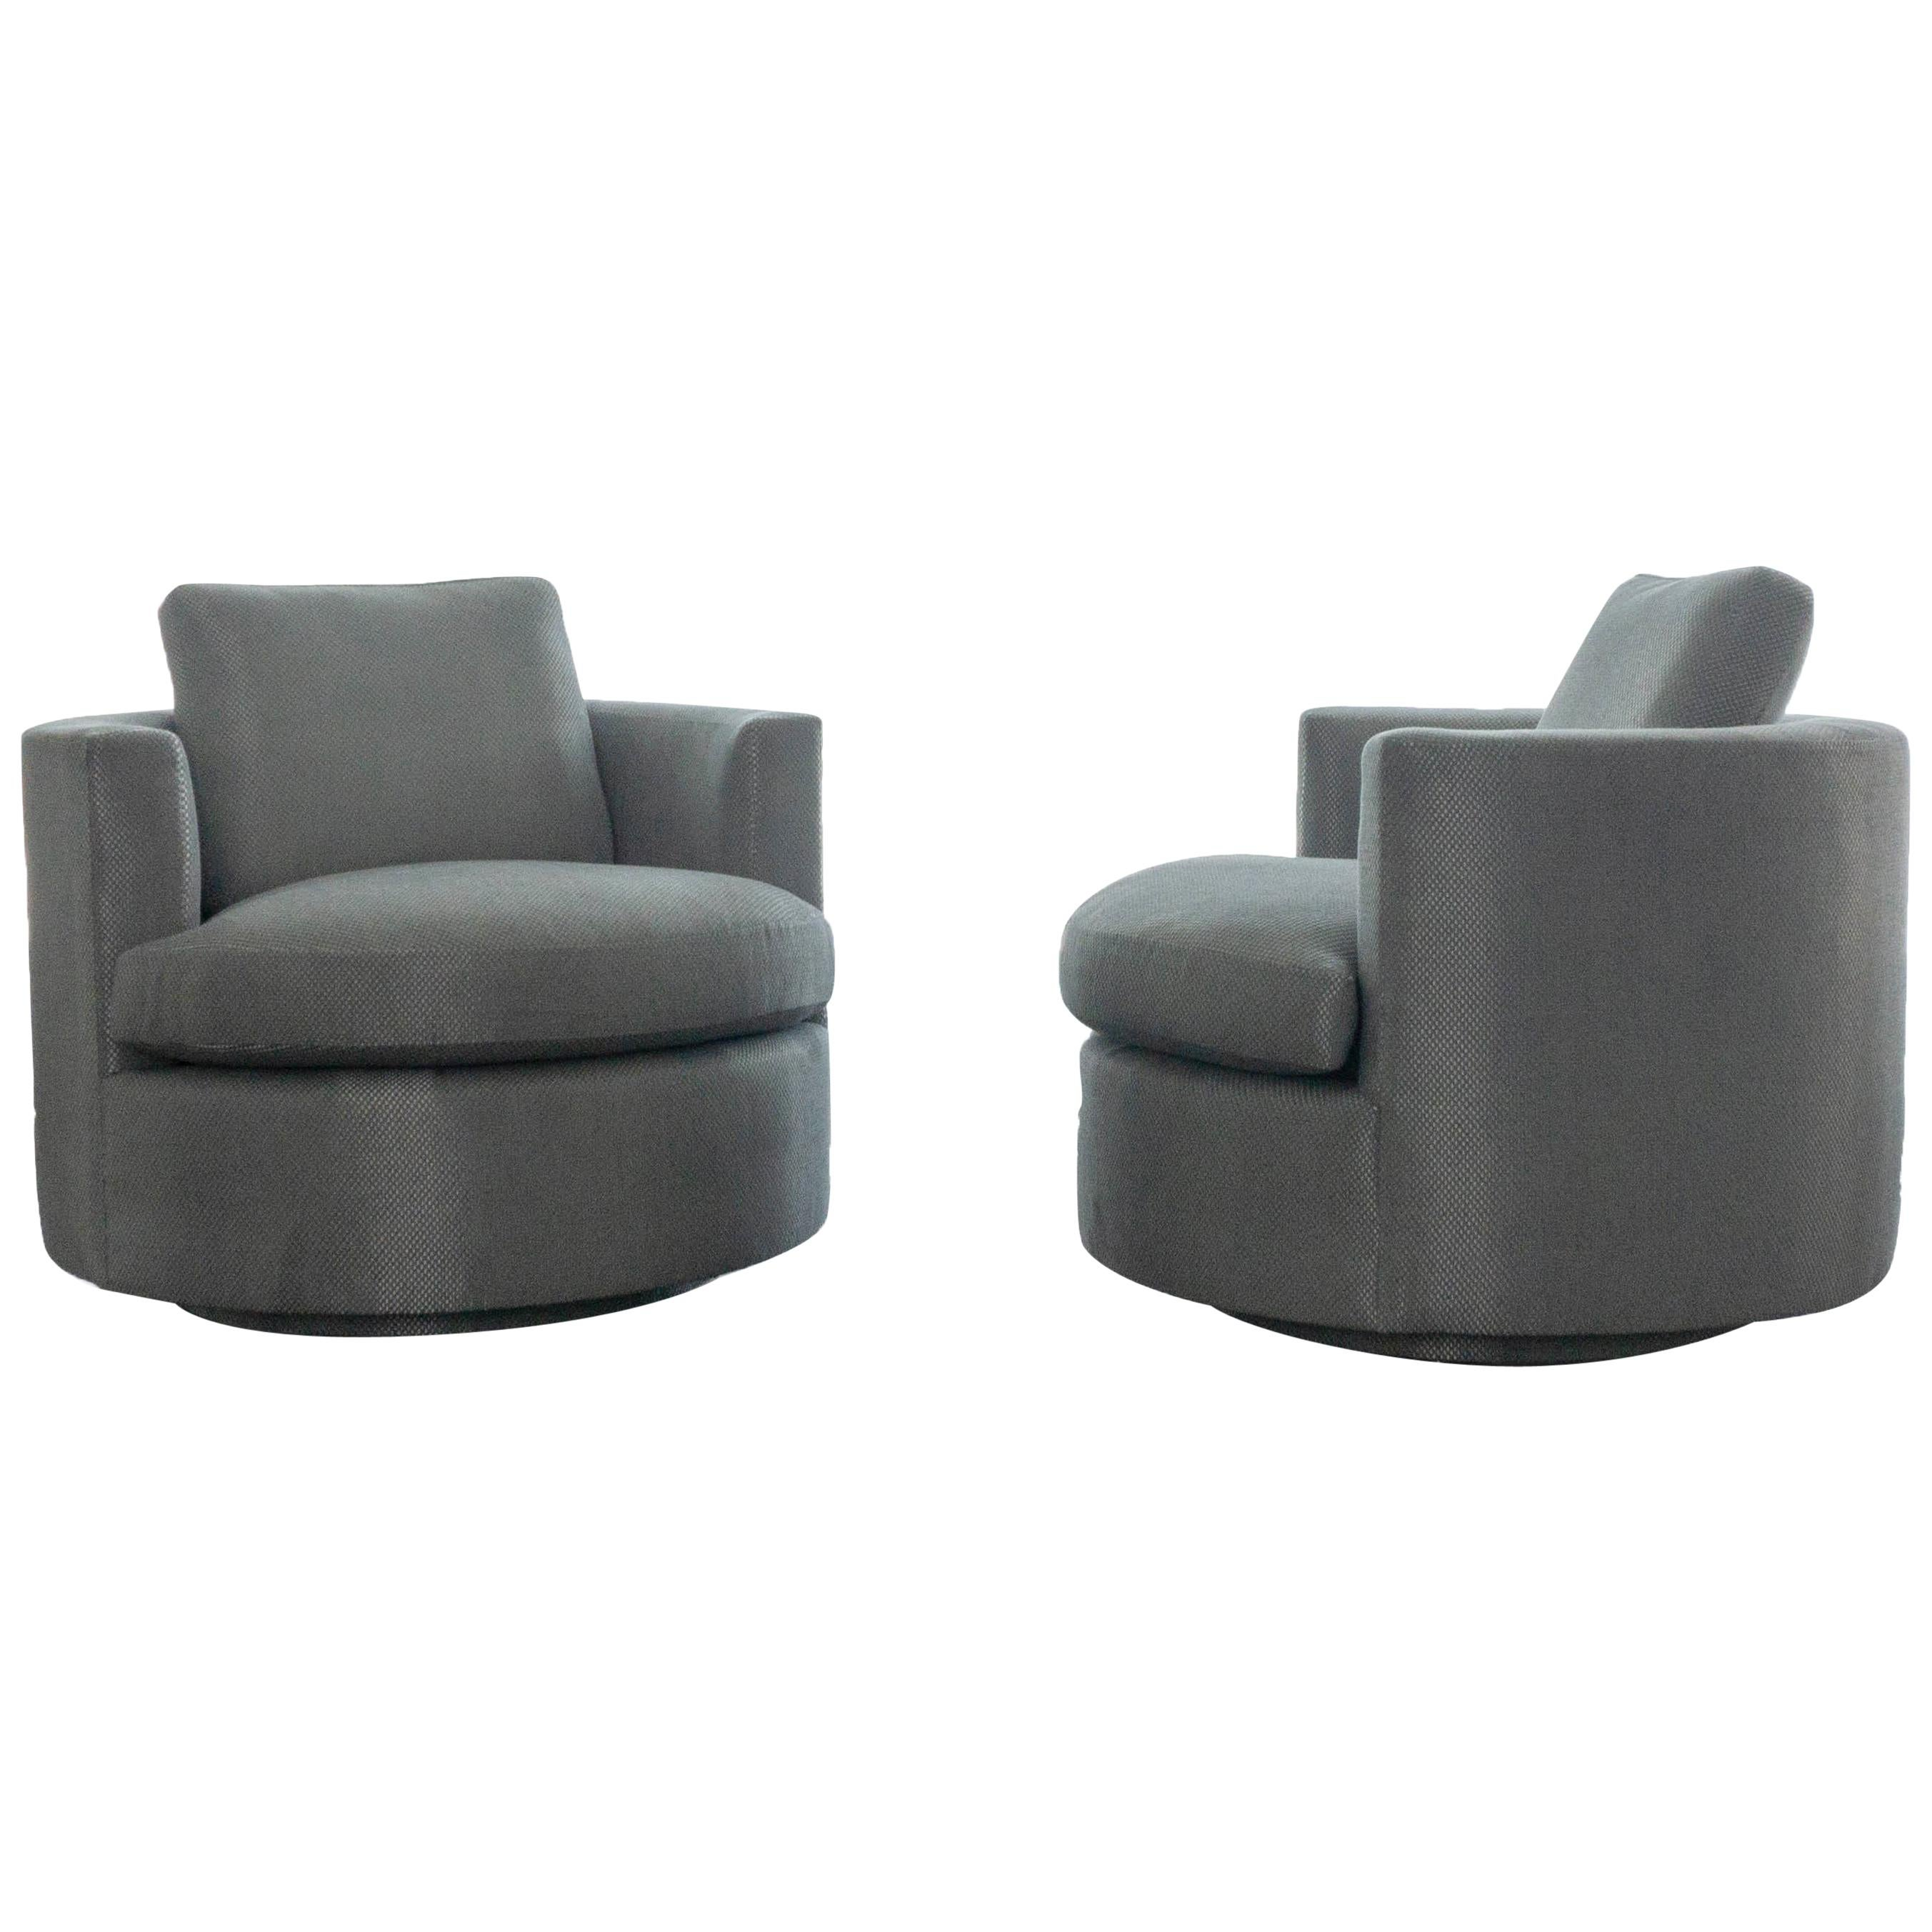 swivel chairs for sale tufted dining modern round chair at 1stdibs